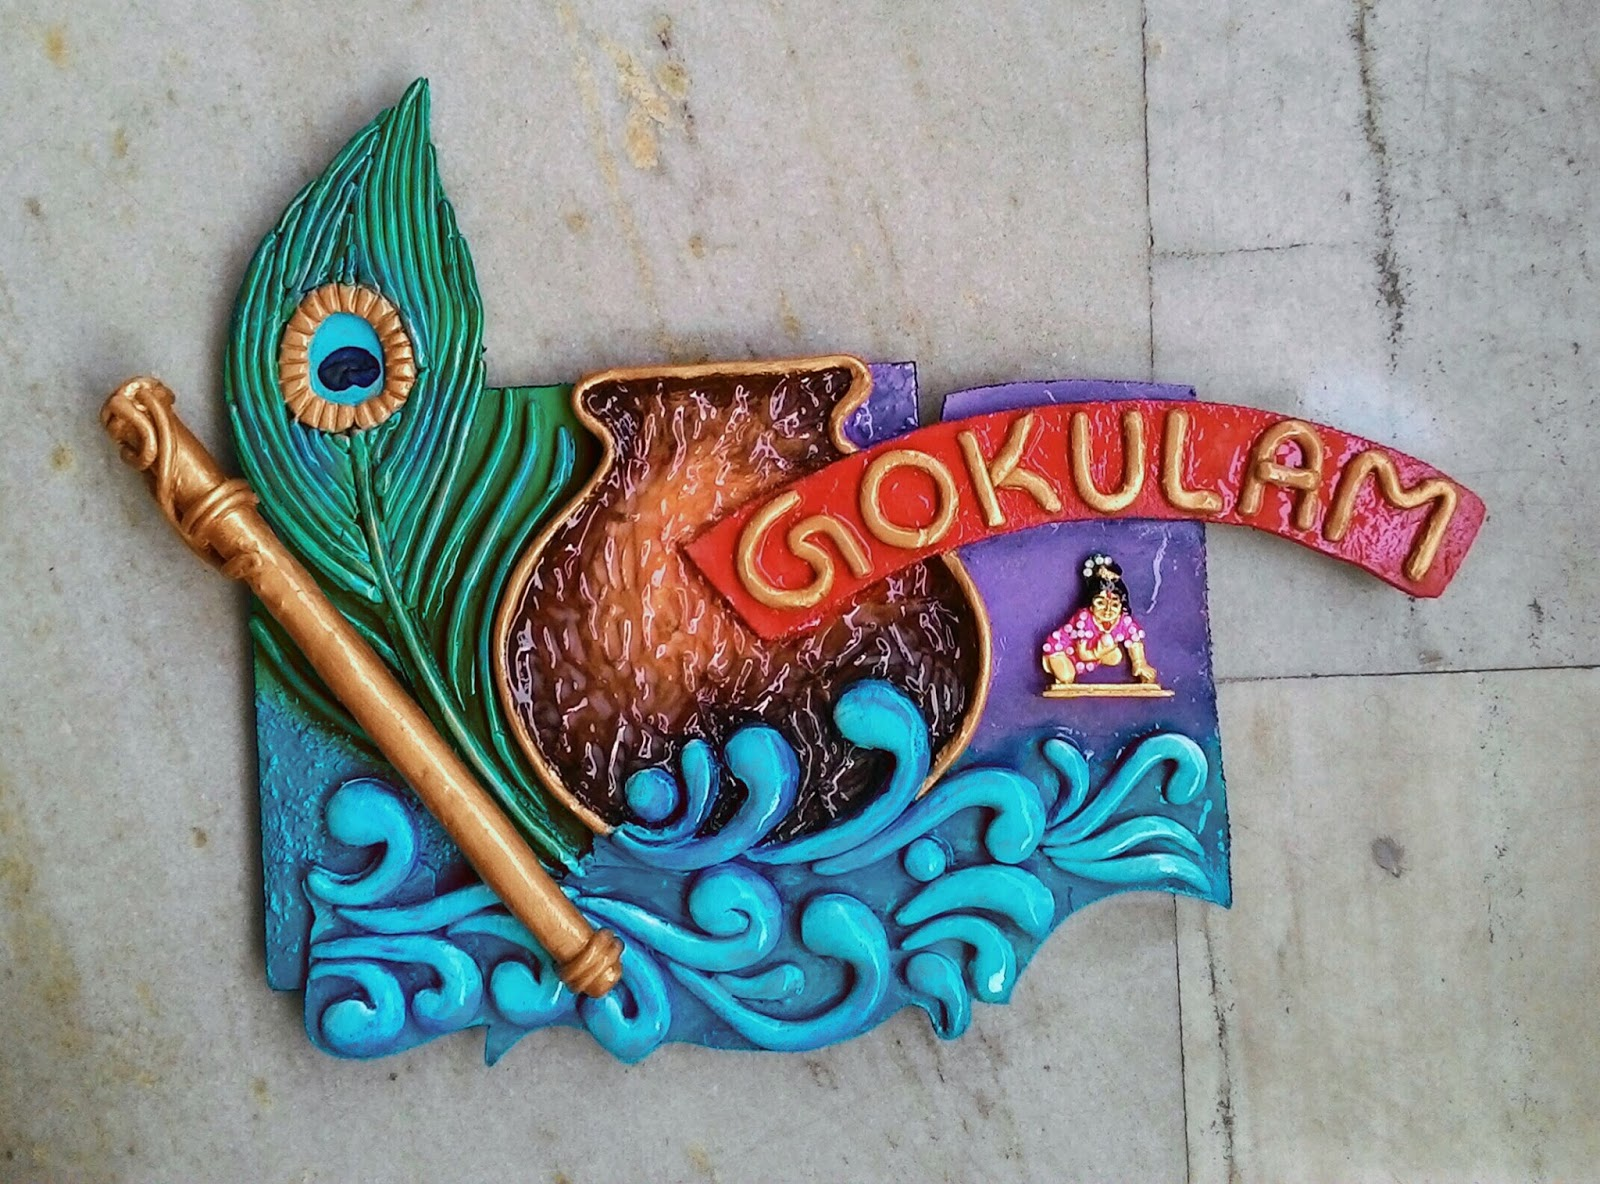 3d mural nameplate with clay work for Mural name plate designs